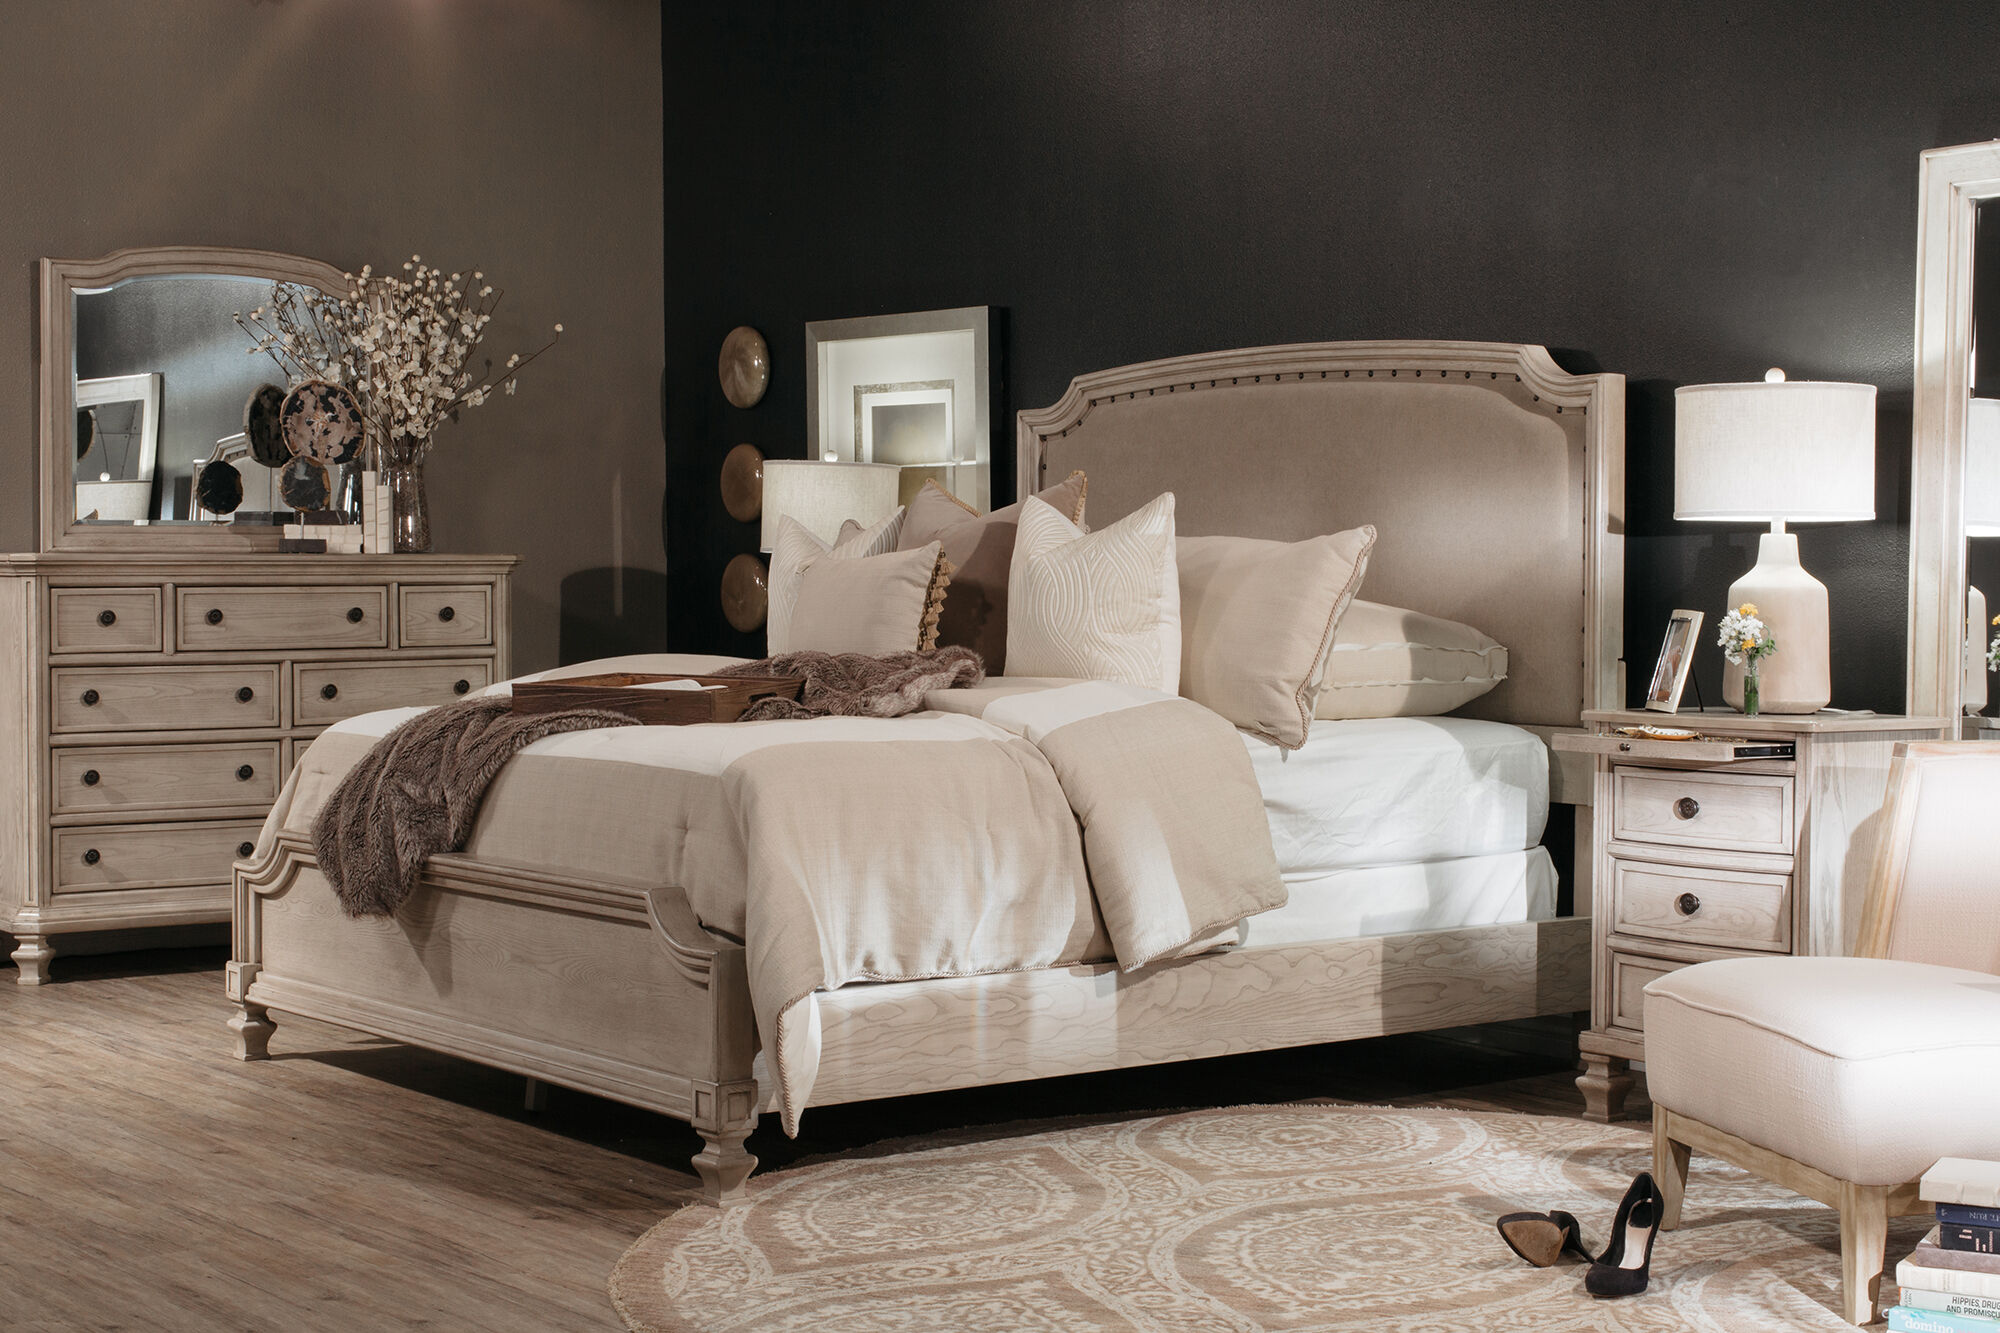 61u0026quot; Nailhead Accented Casual Upholstered Bed In Parchment White